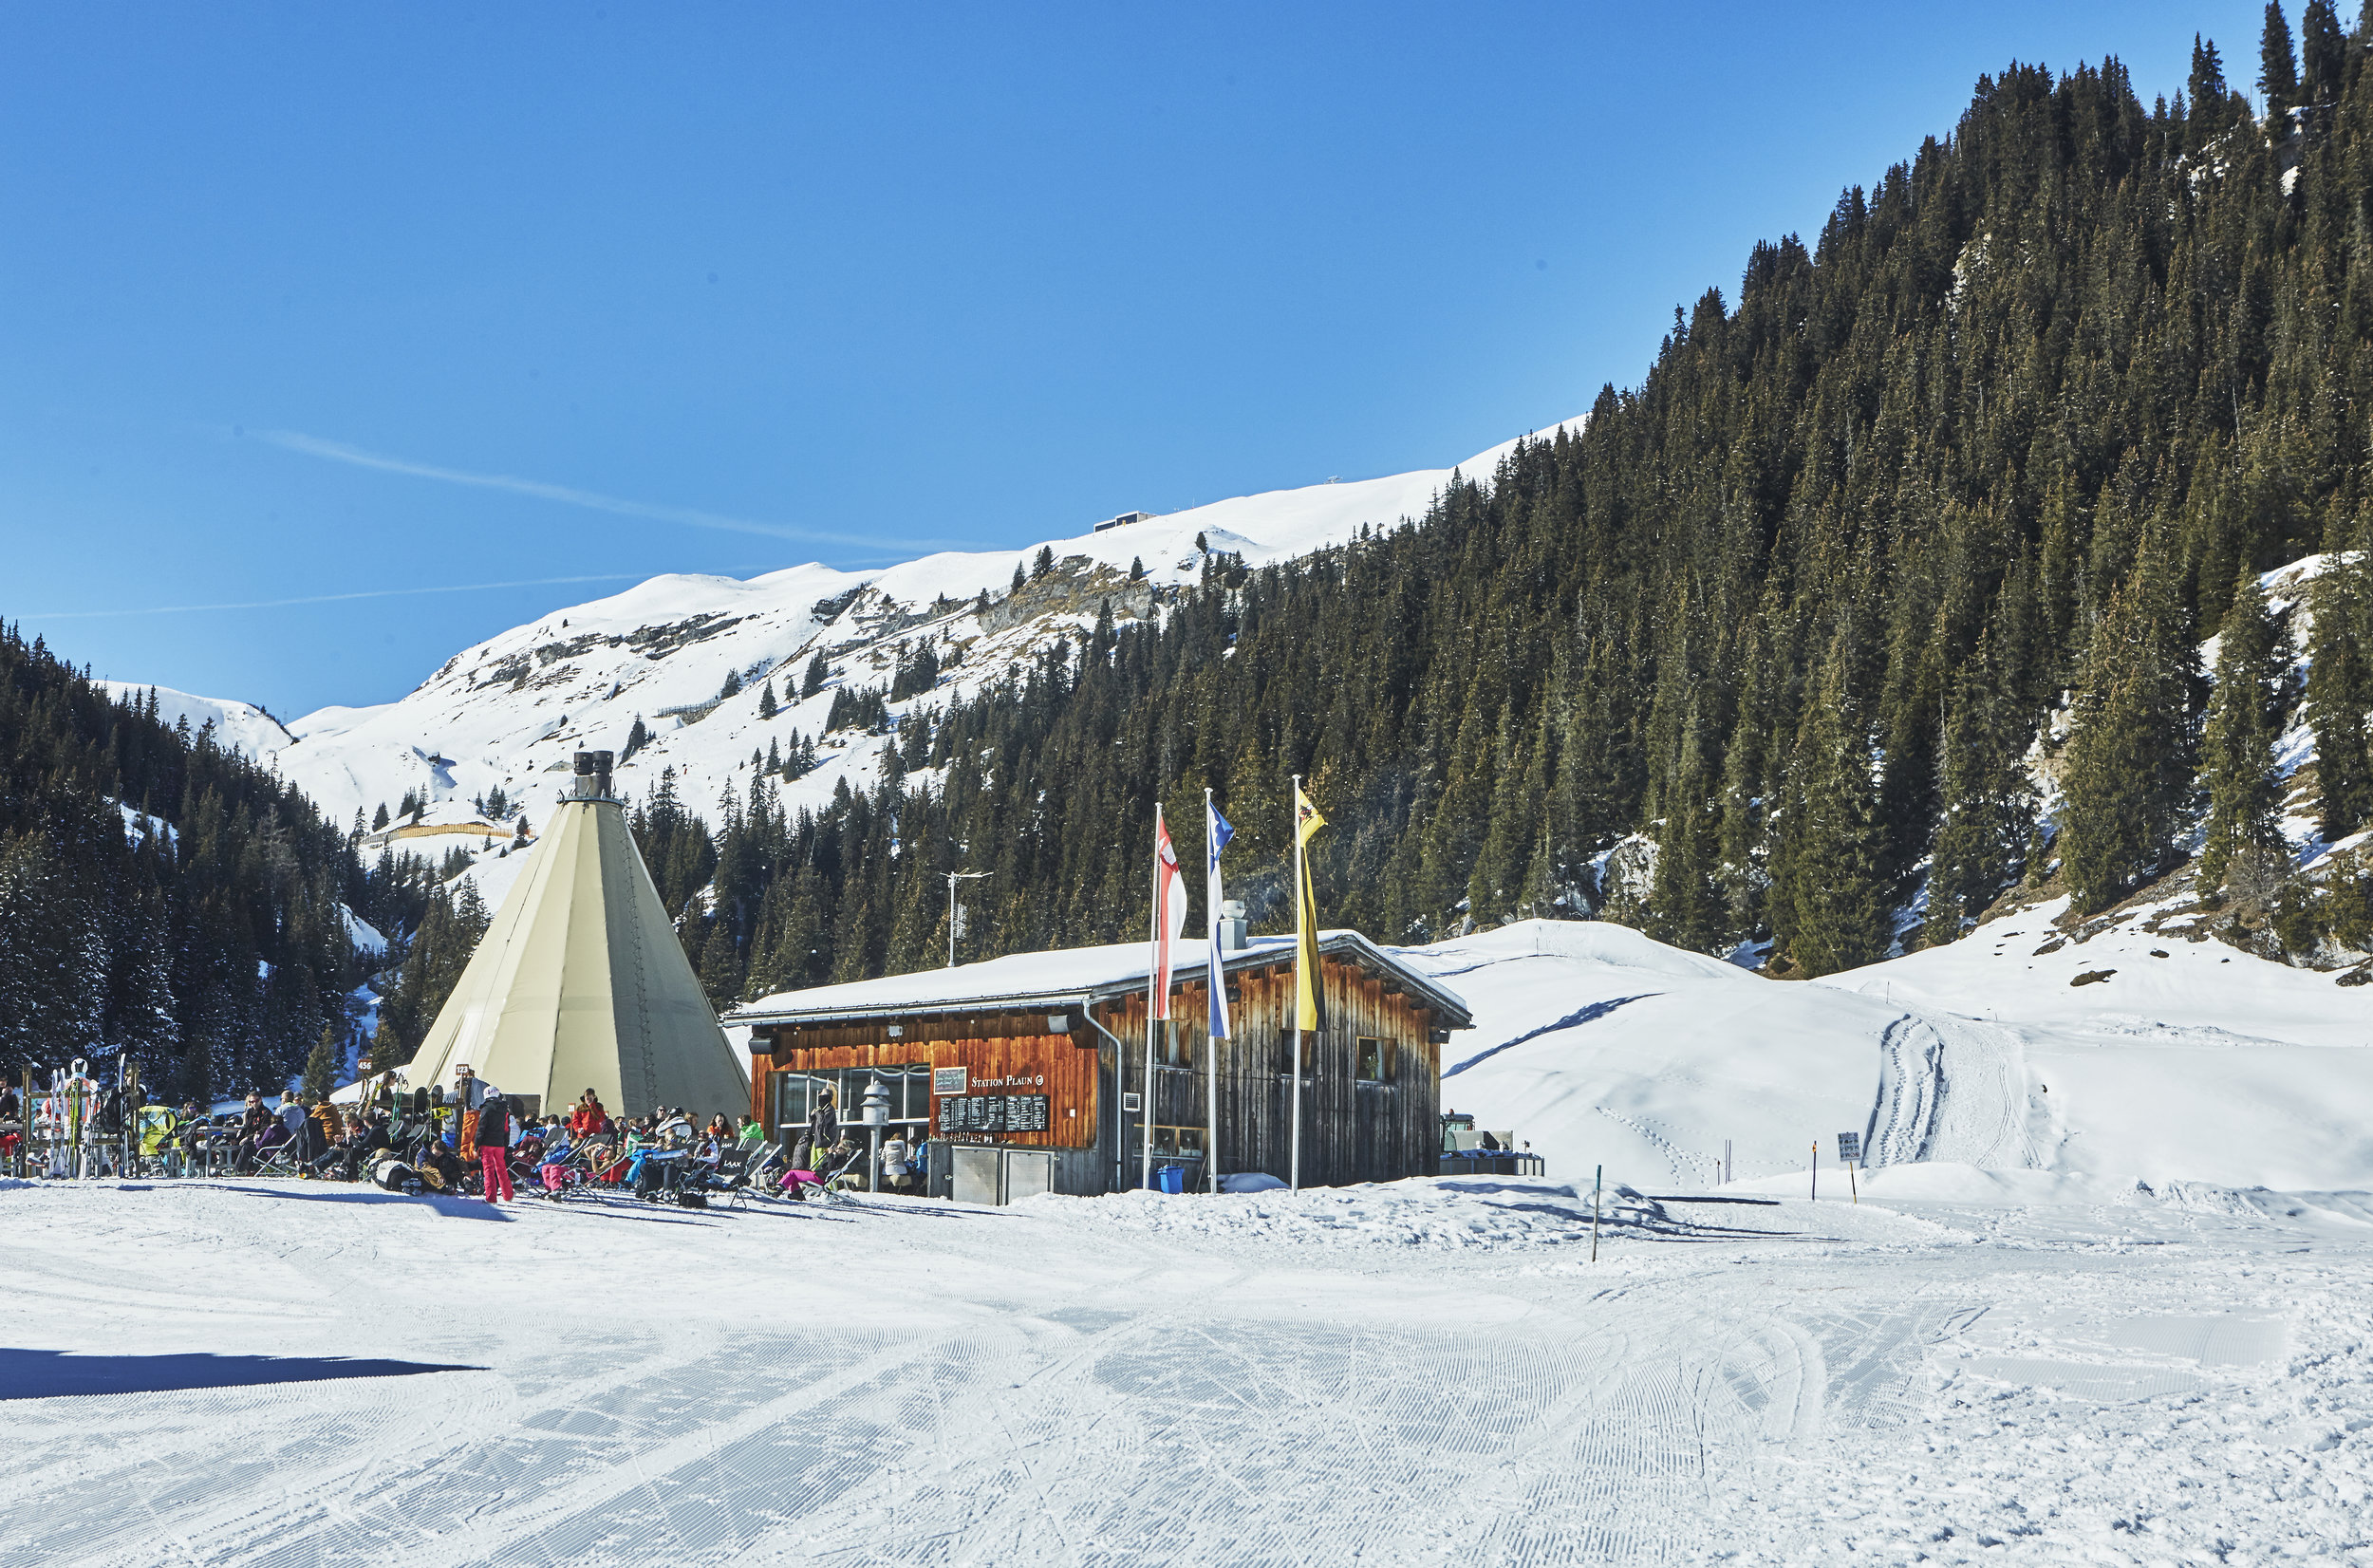 La Vacca teepee set against the mountains of Flims